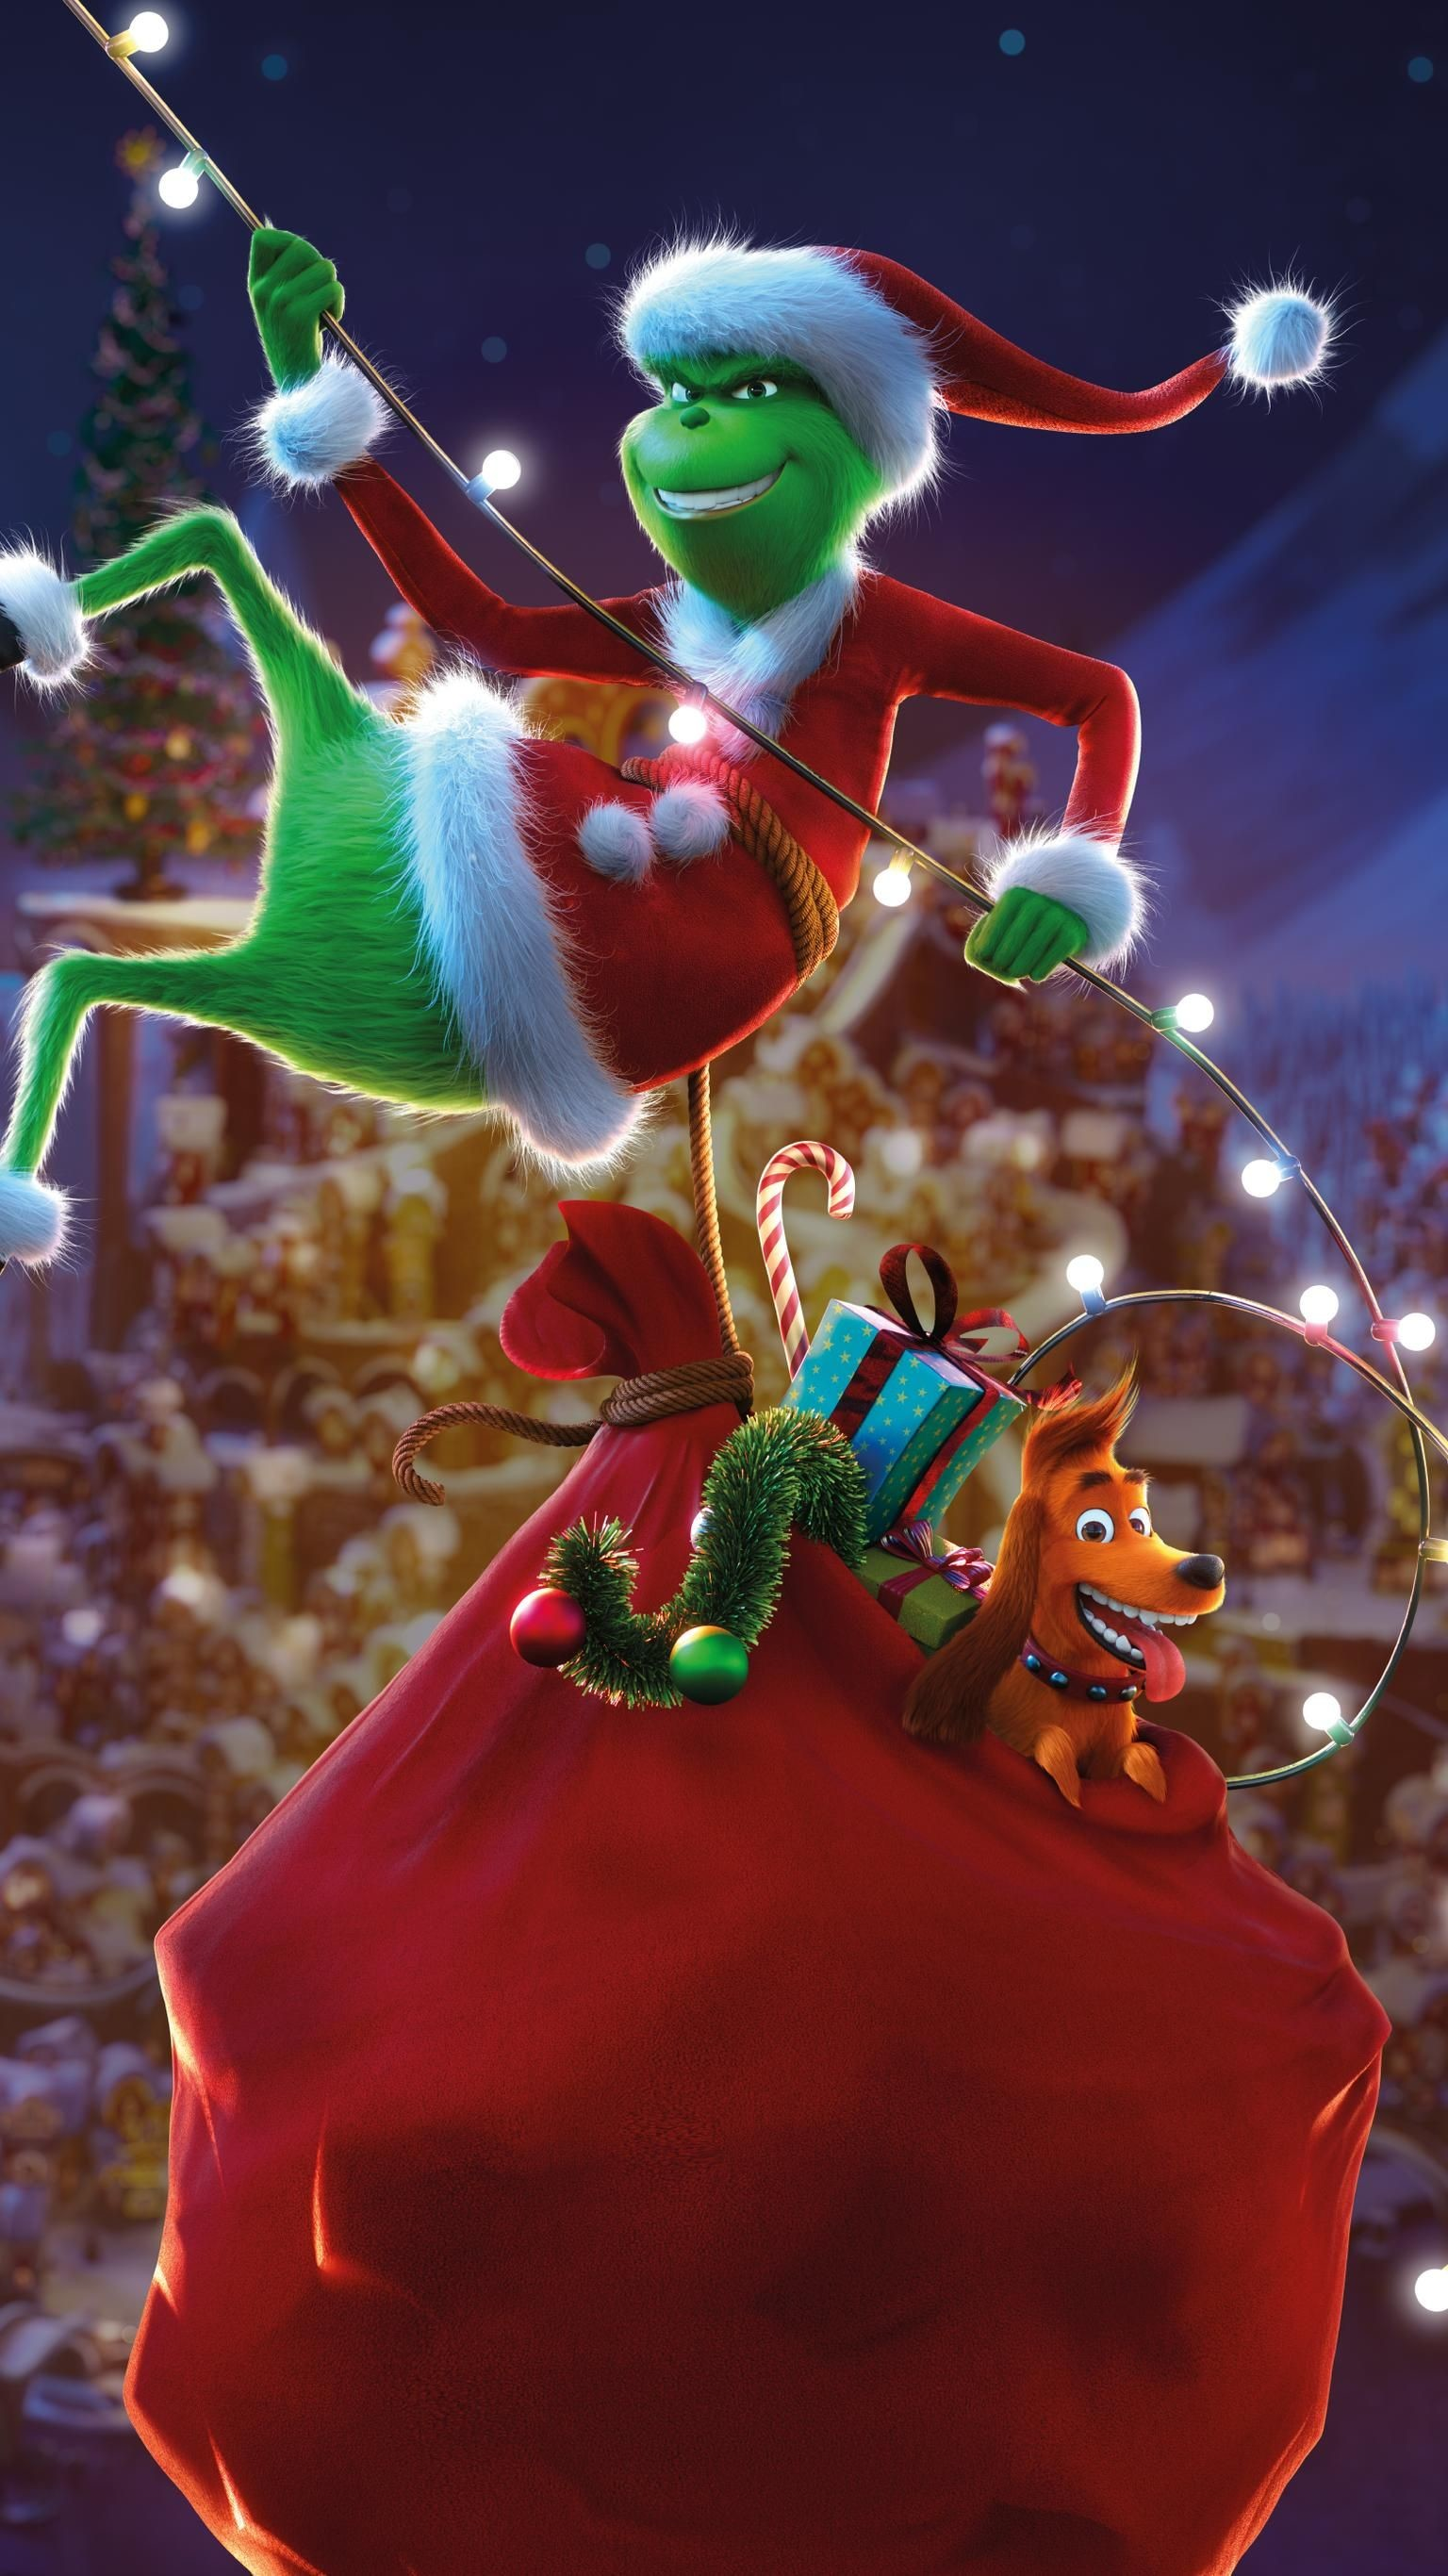 Christmas Wallpaper the Grinch (73+ images)